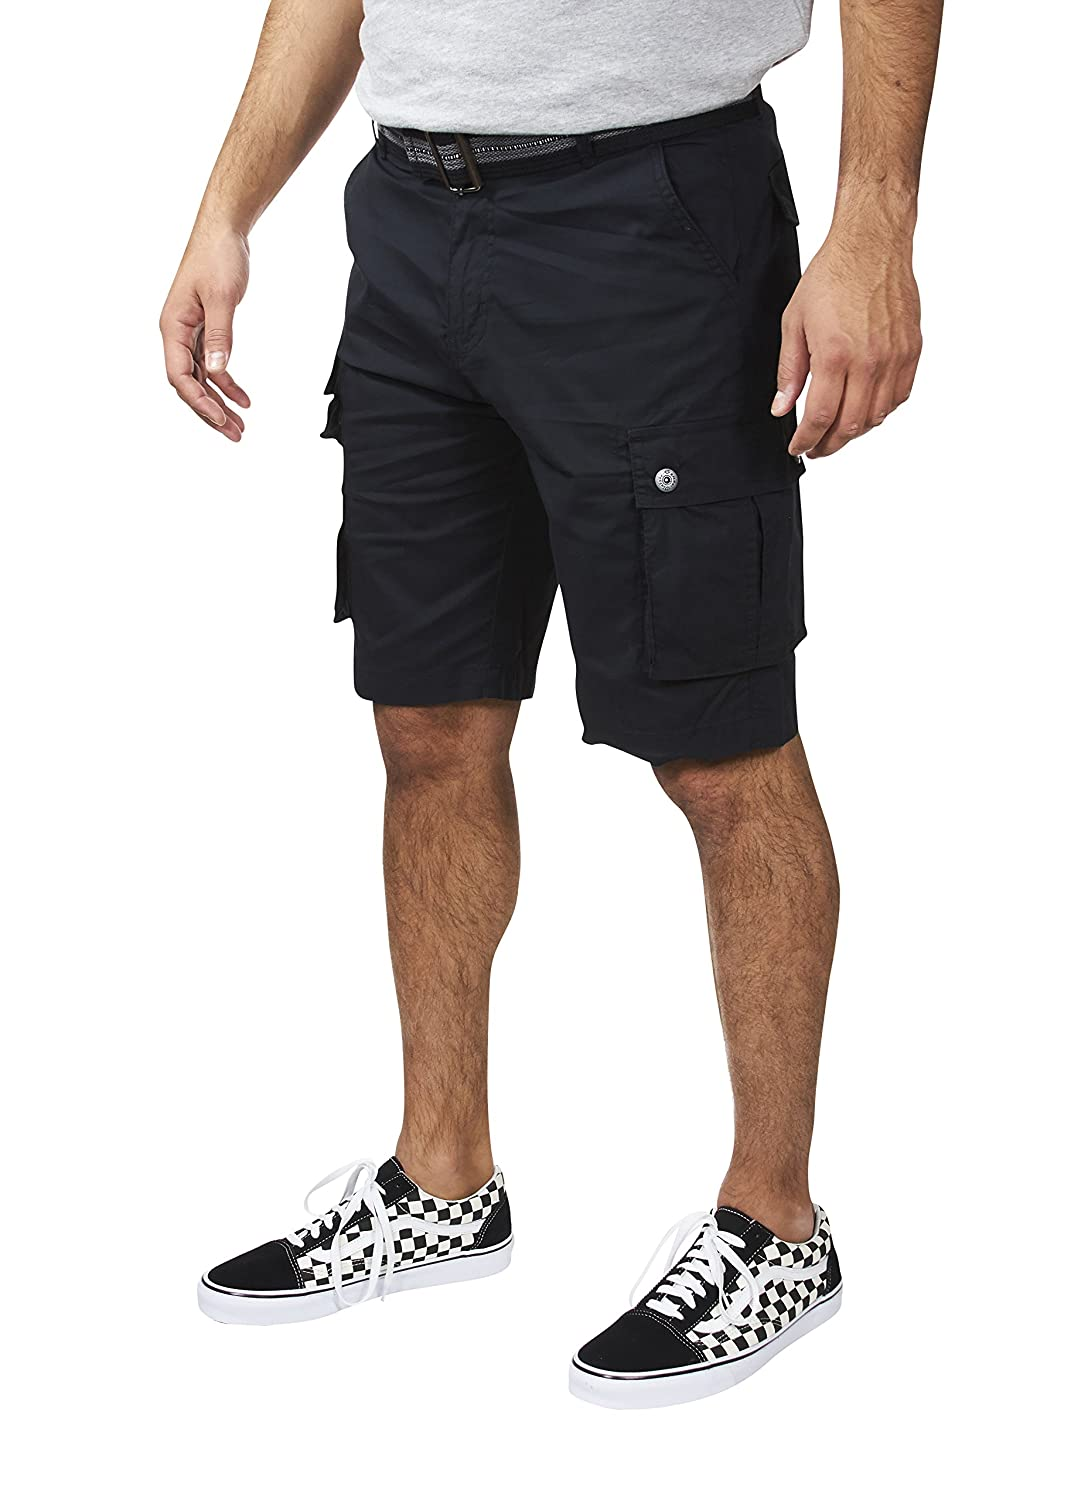 6fcb2fef3c MOVE WITH COMFORT: Made of 100% cotton fabric, these shorts offer optimum  comfort and breathability so you can move without limits